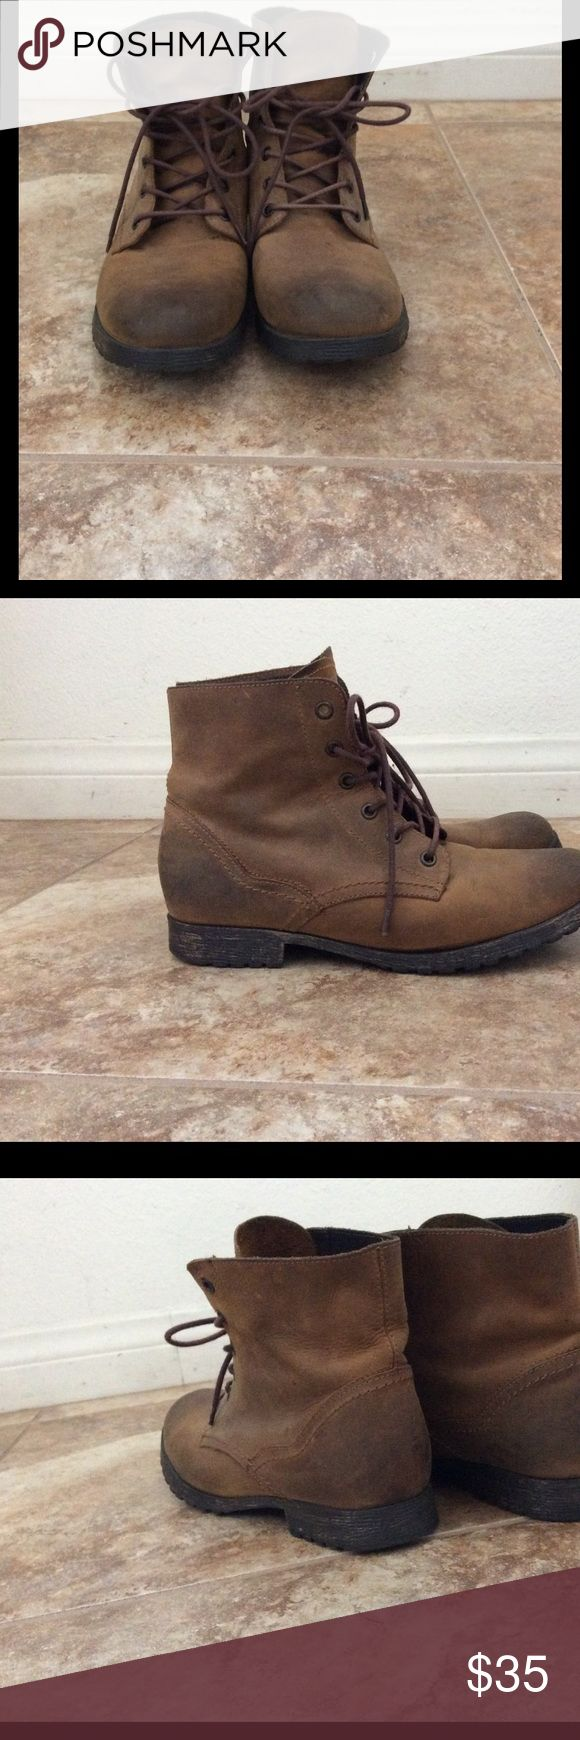 Aldo Boots In great condition only worn twice. They are very cute and comfy. Btw Aldo I feel like tends to run smaller and narrow just FYI I'm typically and 8-8.5 Aldo Shoes Combat & Moto Boots